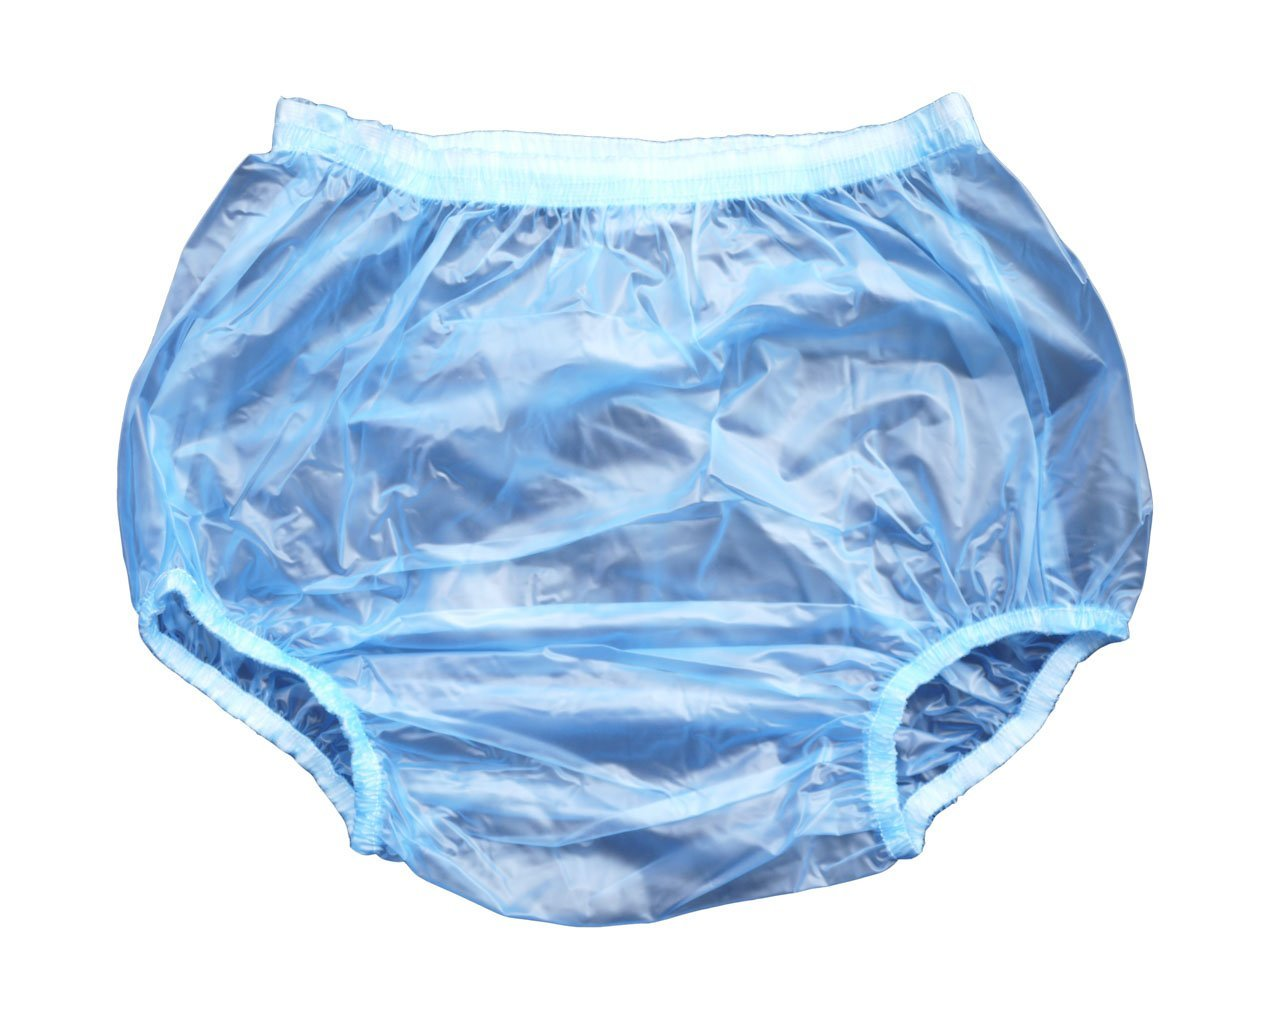 Haian Adult Incontinence Pull-on Plastic Pants Color Transparent Blue (Large) Lang Kee